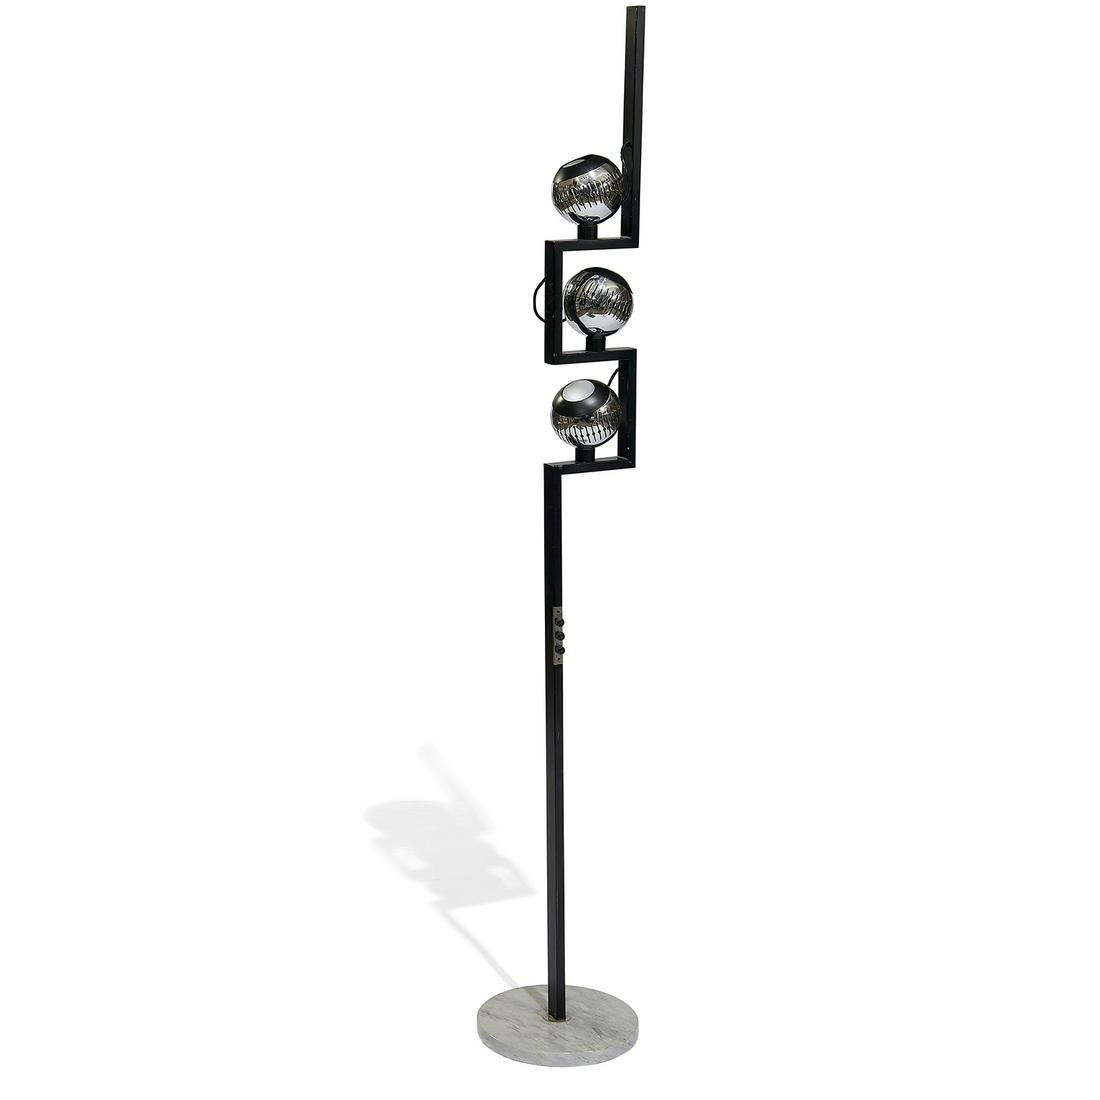 Angelo Lelii for Arredoluce floor lamp